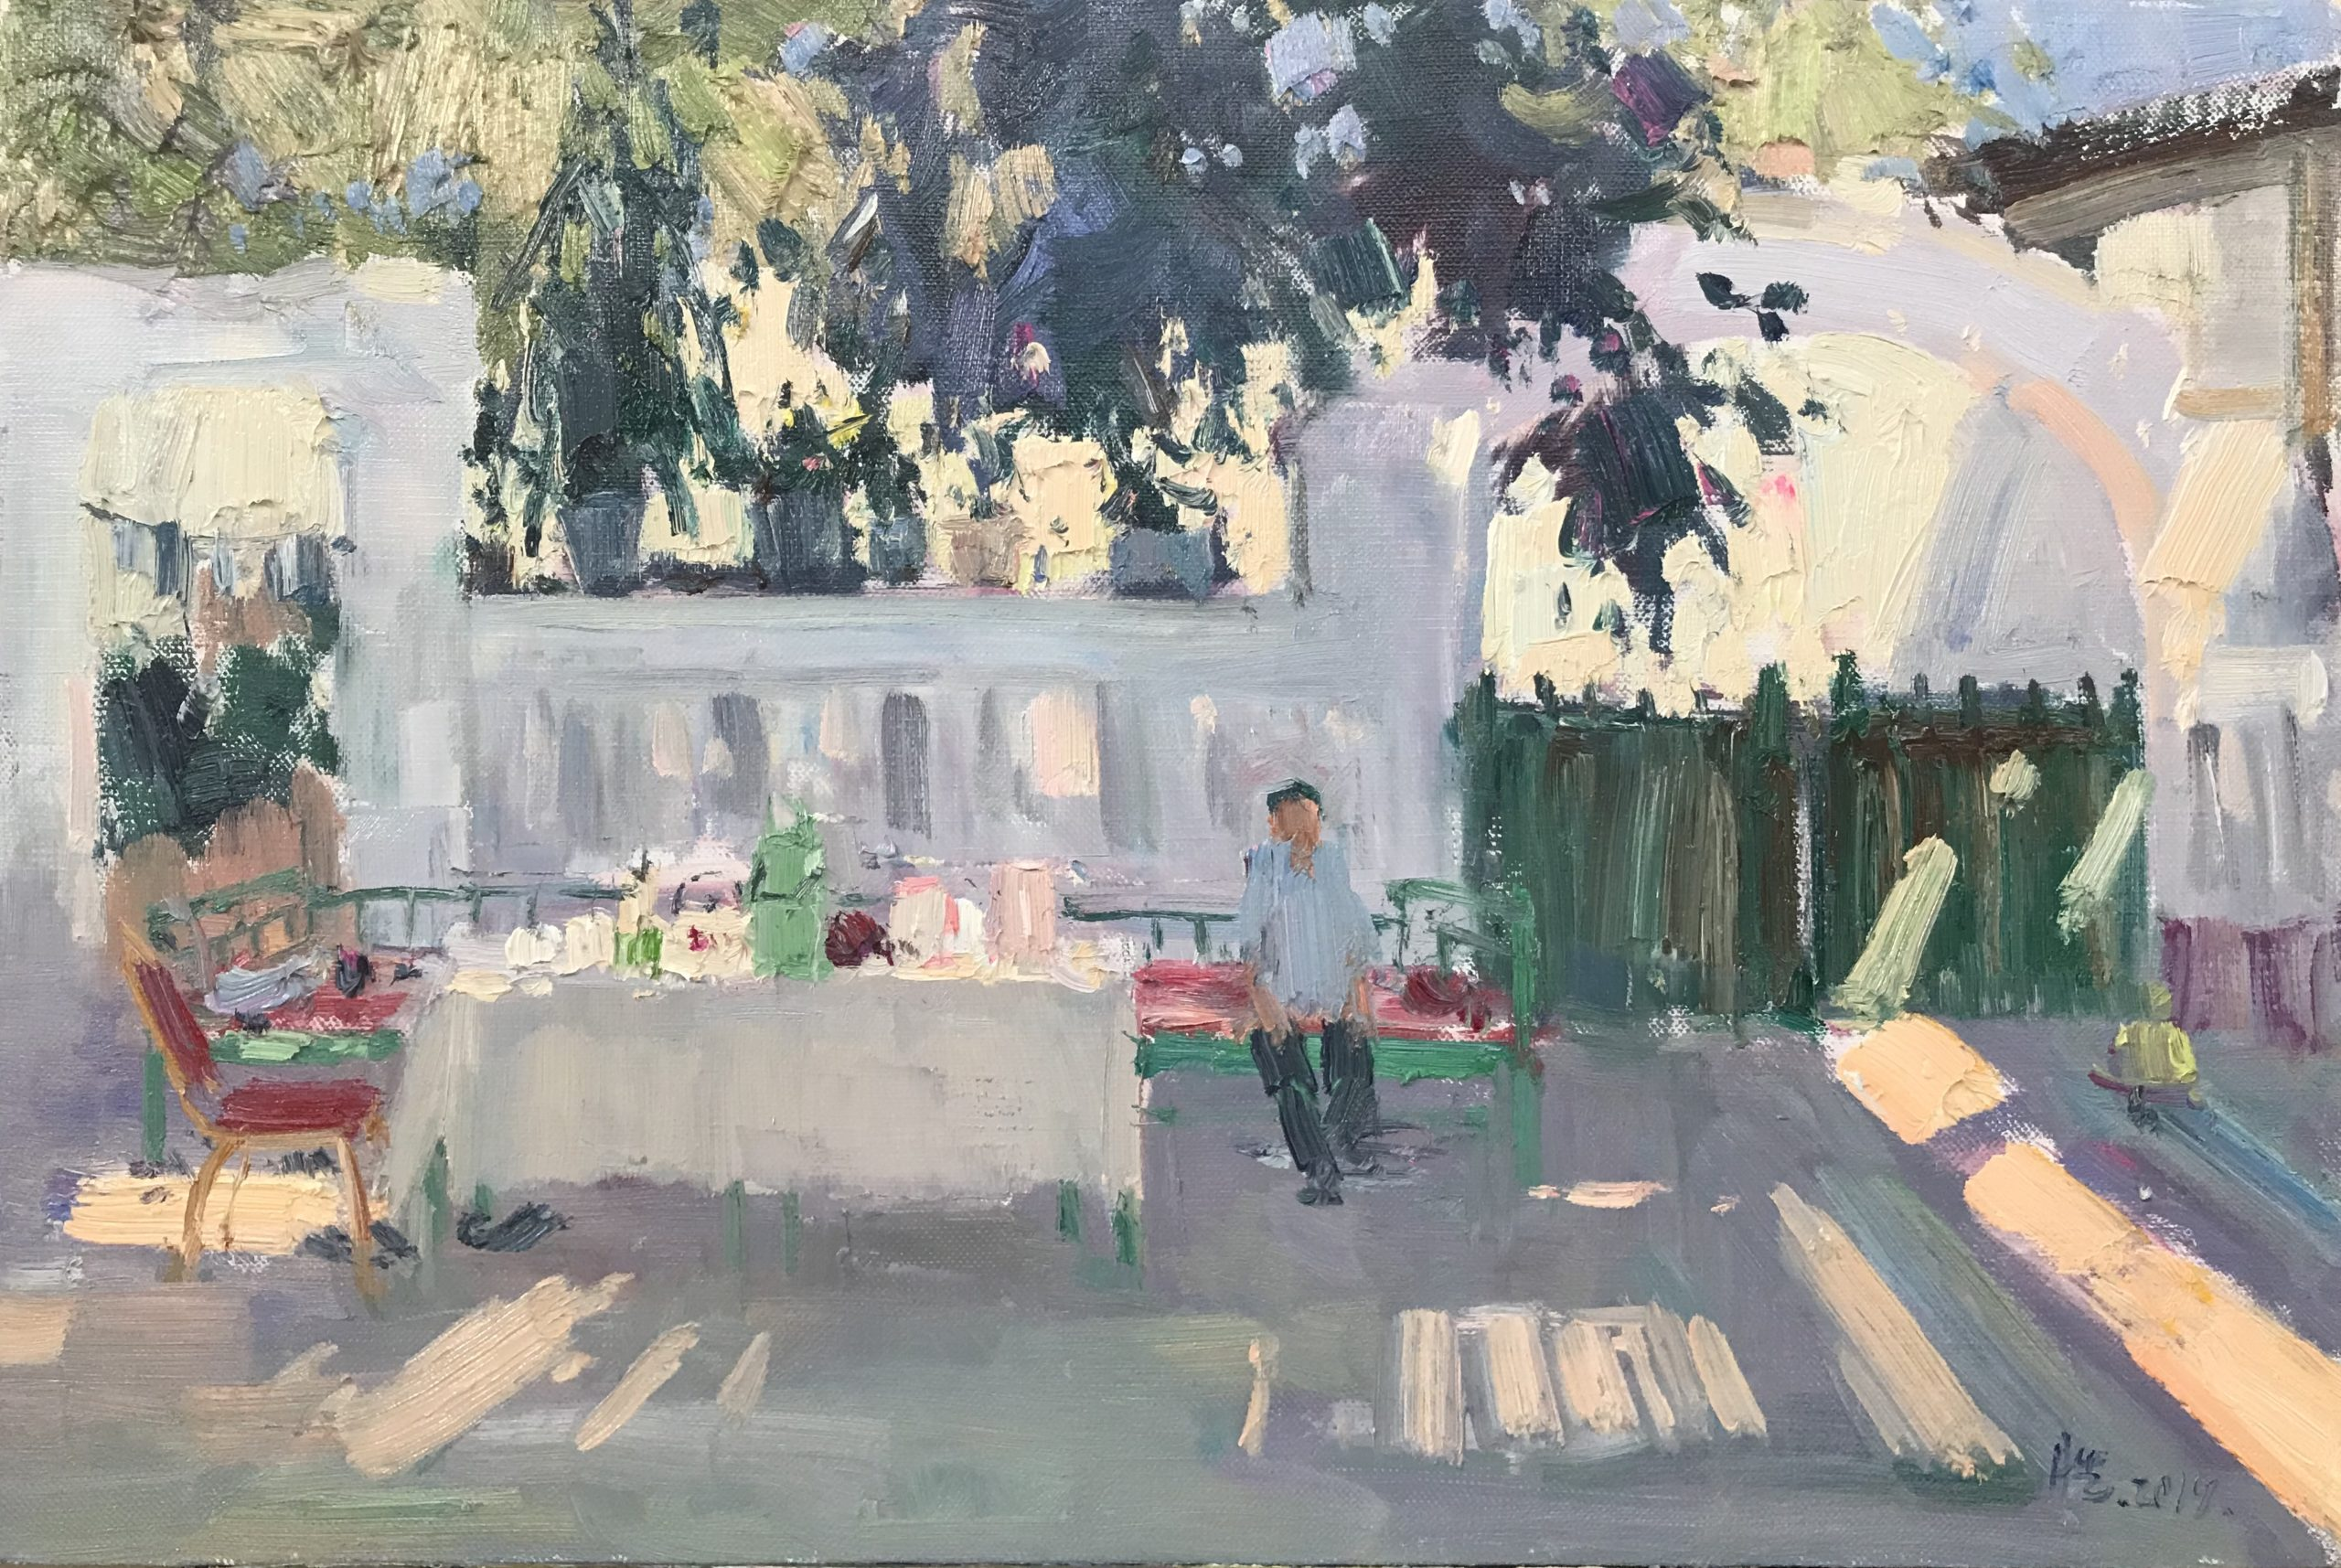 Video Of Exhibition of Plein Air Work in China by Meng Qing Sheng 2